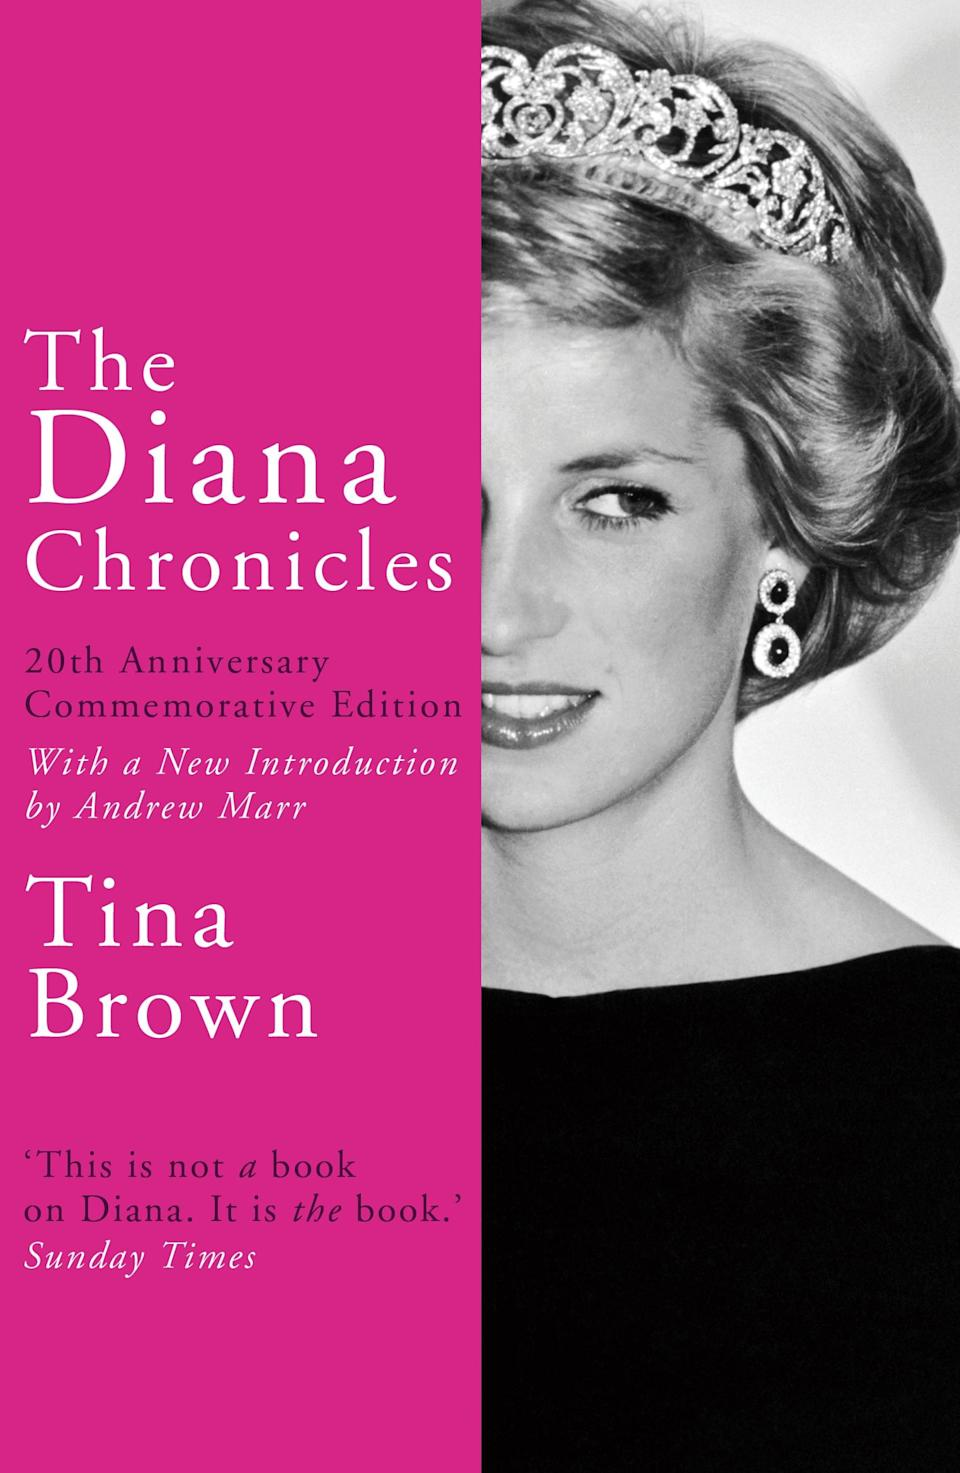 """<p>Described as """"not a book on Diana"""" but """"<em>the</em> book"""" by the Sunday Times, 'The Diana Chronicles' is a must for those wanting to find out more about the late Princess of Wales. And in celebration of the 20th anniversary, a commemorative edition is now available.<br><em><a rel=""""nofollow noopener"""" href=""""https://www.waterstones.com/book/the-diana-chronicles/tina-brown/9781784758868"""" target=""""_blank"""" data-ylk=""""slk:Waterstones"""" class=""""link rapid-noclick-resp"""">Waterstones</a>, £8.99</em> </p>"""